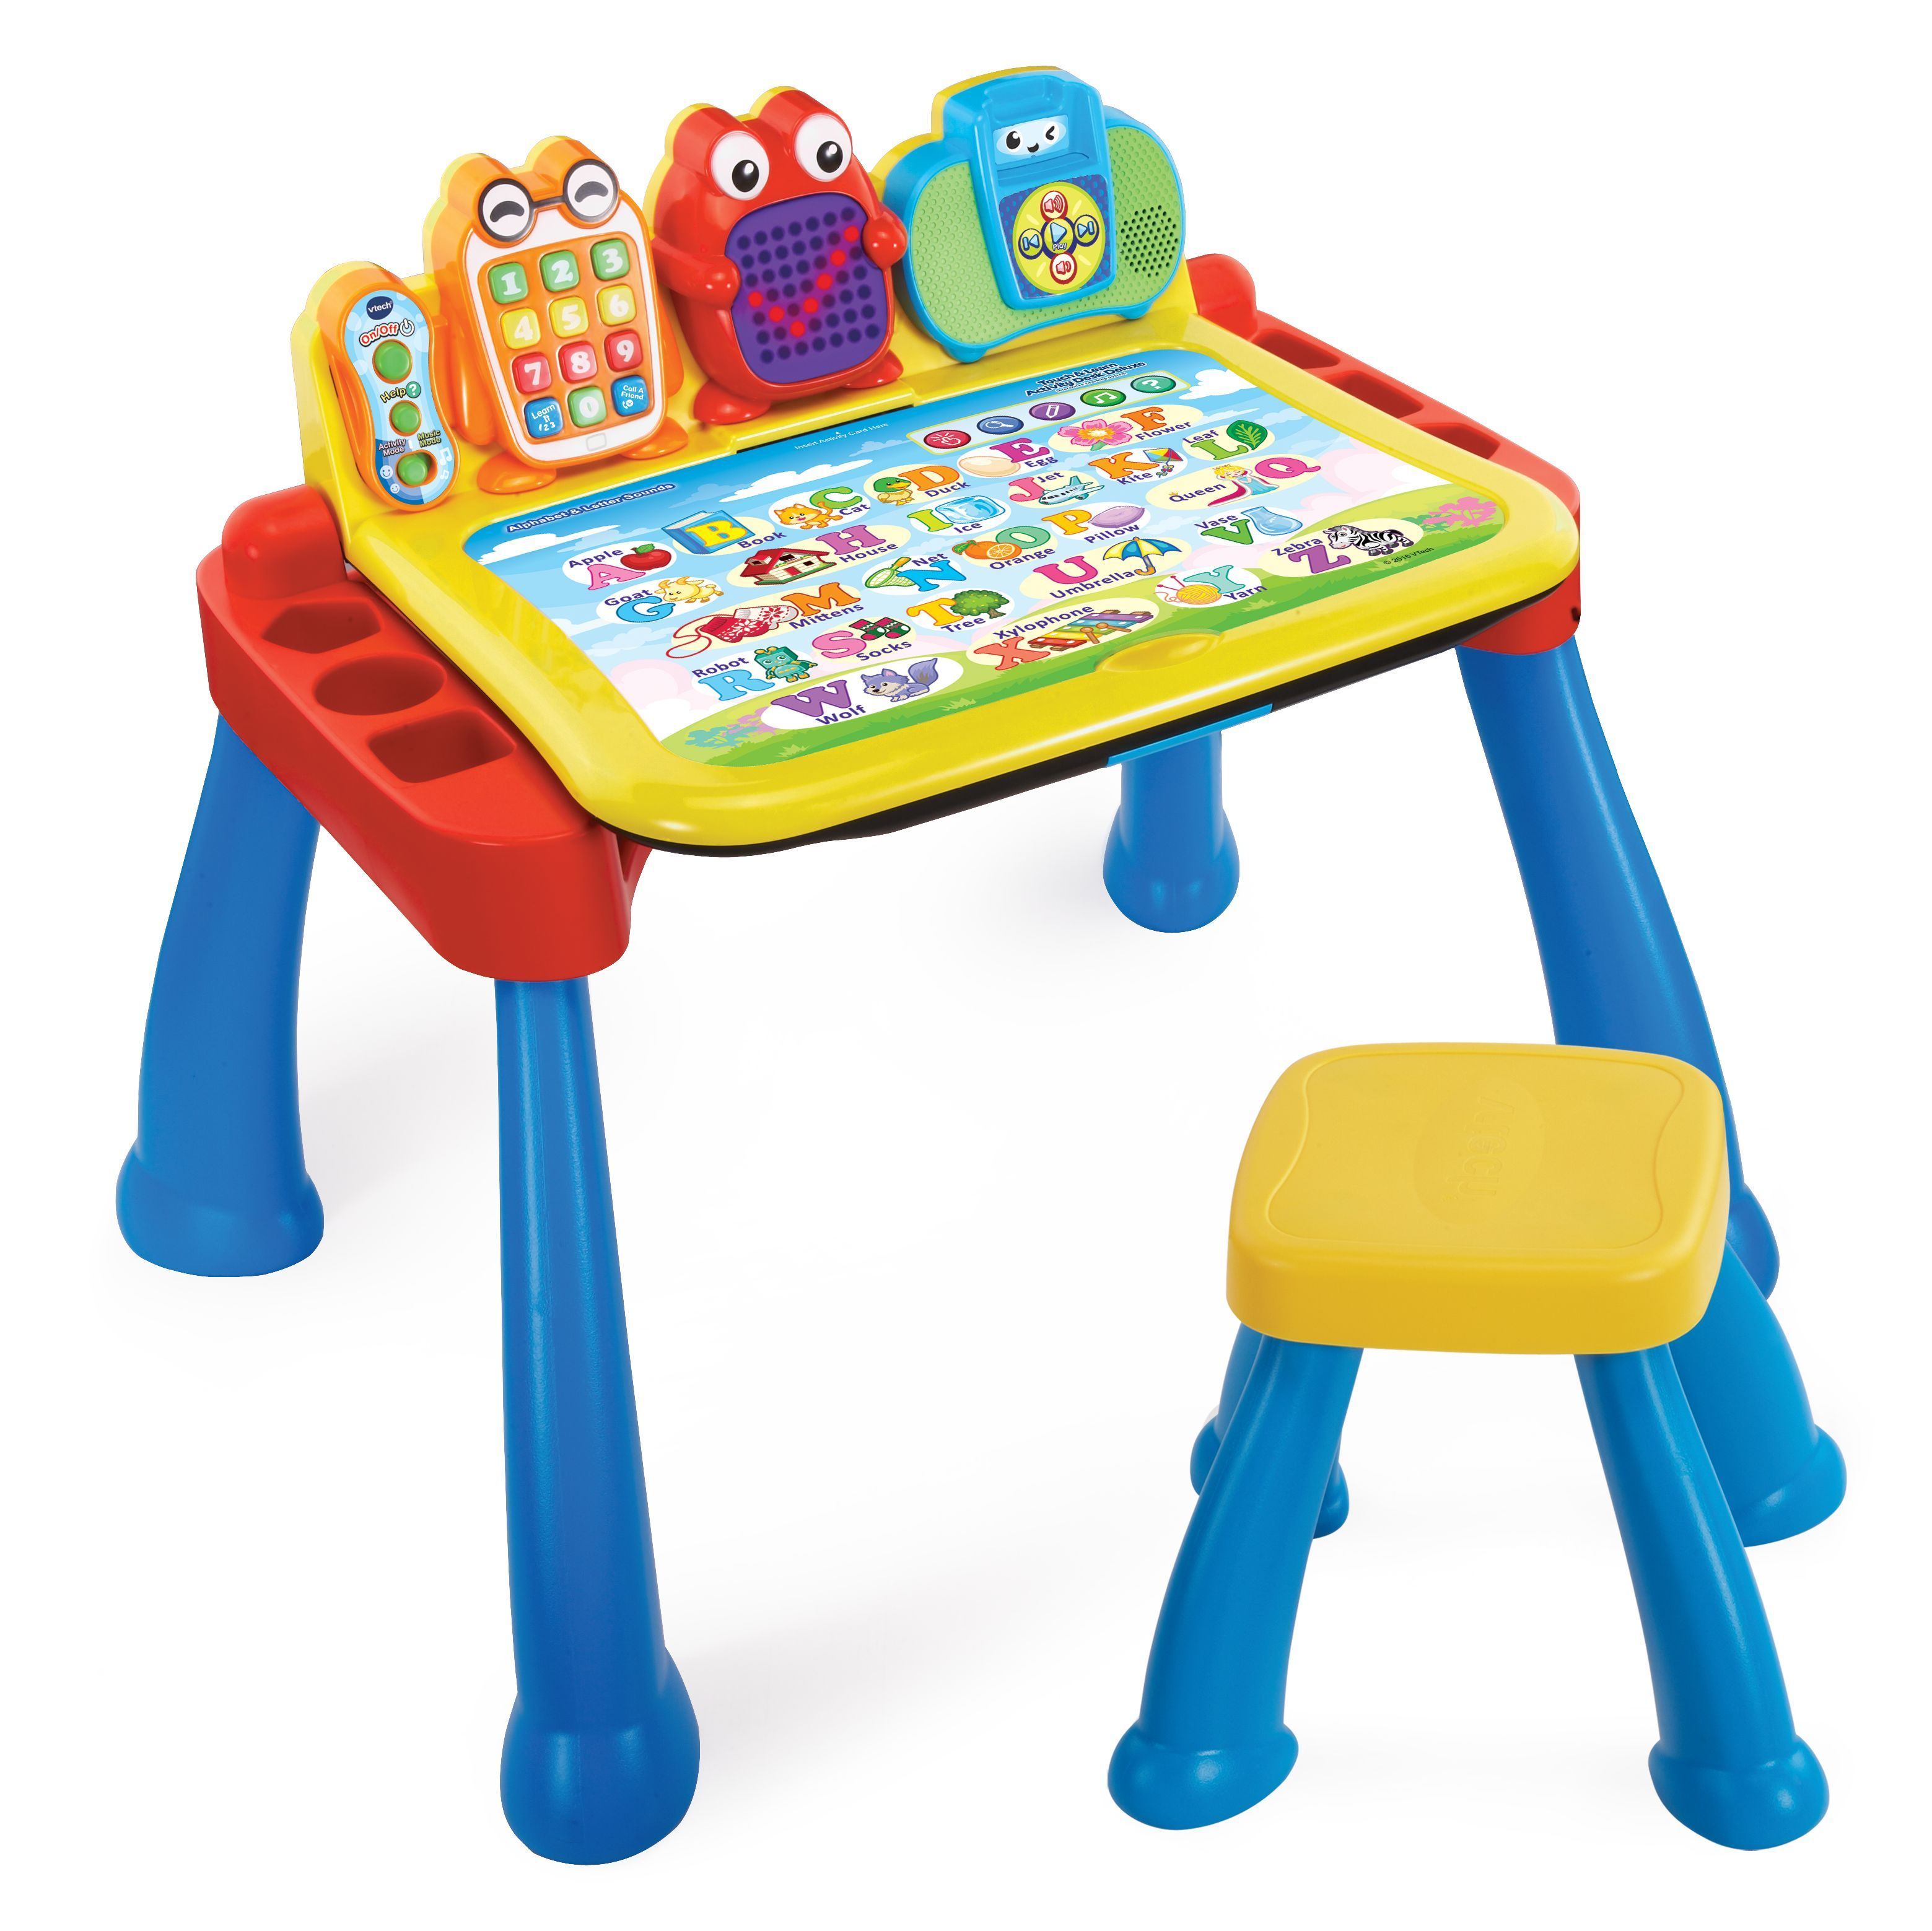 Vtech Touch And Learn Activity Desk Deluxe Educational Toys For